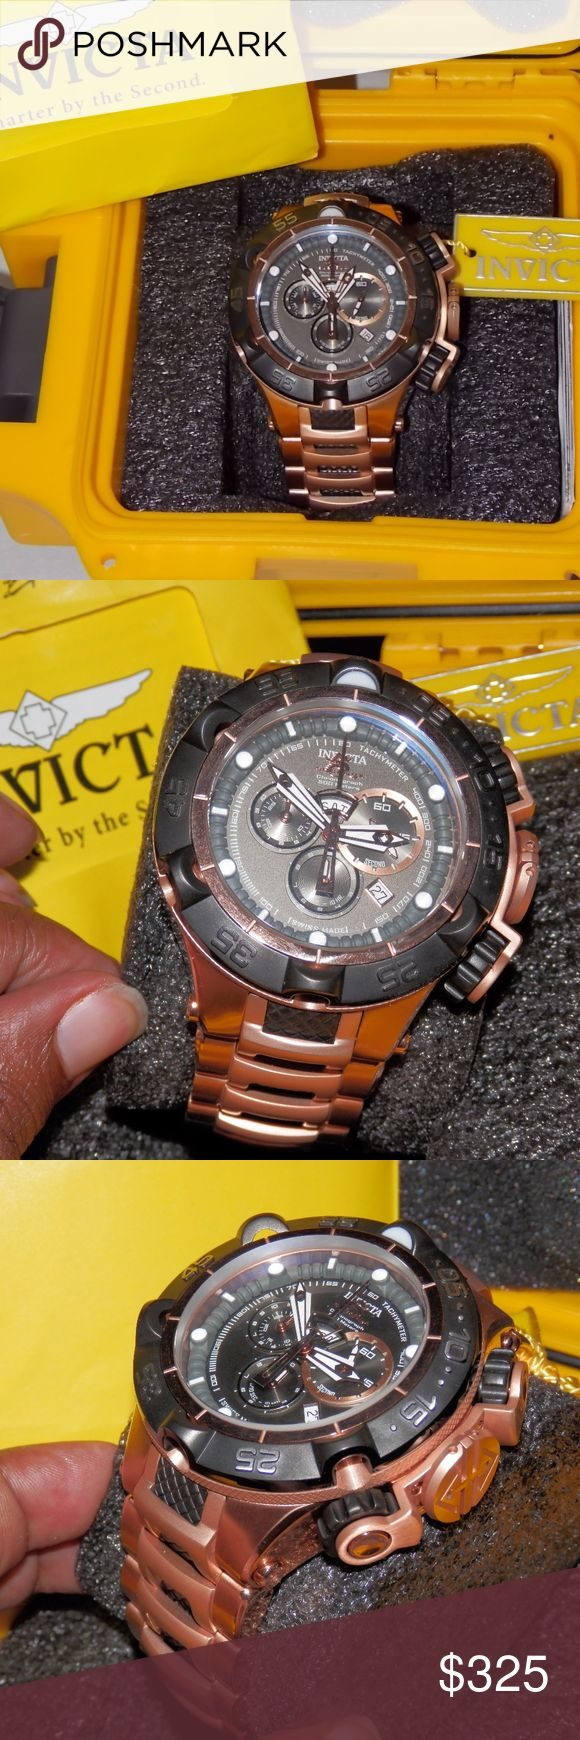 """Invicta Subaqua Noma V 15916 Quartz 50mm Rosetone Invicta Subaqua Noma V 15916 Swiss Quartz 50mm ROSE GOLD/GUNMETAL ion plated SS  Lightly worn. All functions/dials/pushers work. Original battery cannot be guaranteed  Bracelet shortened to about 8"""", additional links included to lengthen to original length. Comes with yellow Invicta single dive box, instructions.  Copy/paste link in browser for add'l info: http://www.evine.com/Product/627-732 Invicta Accessories Watches"""